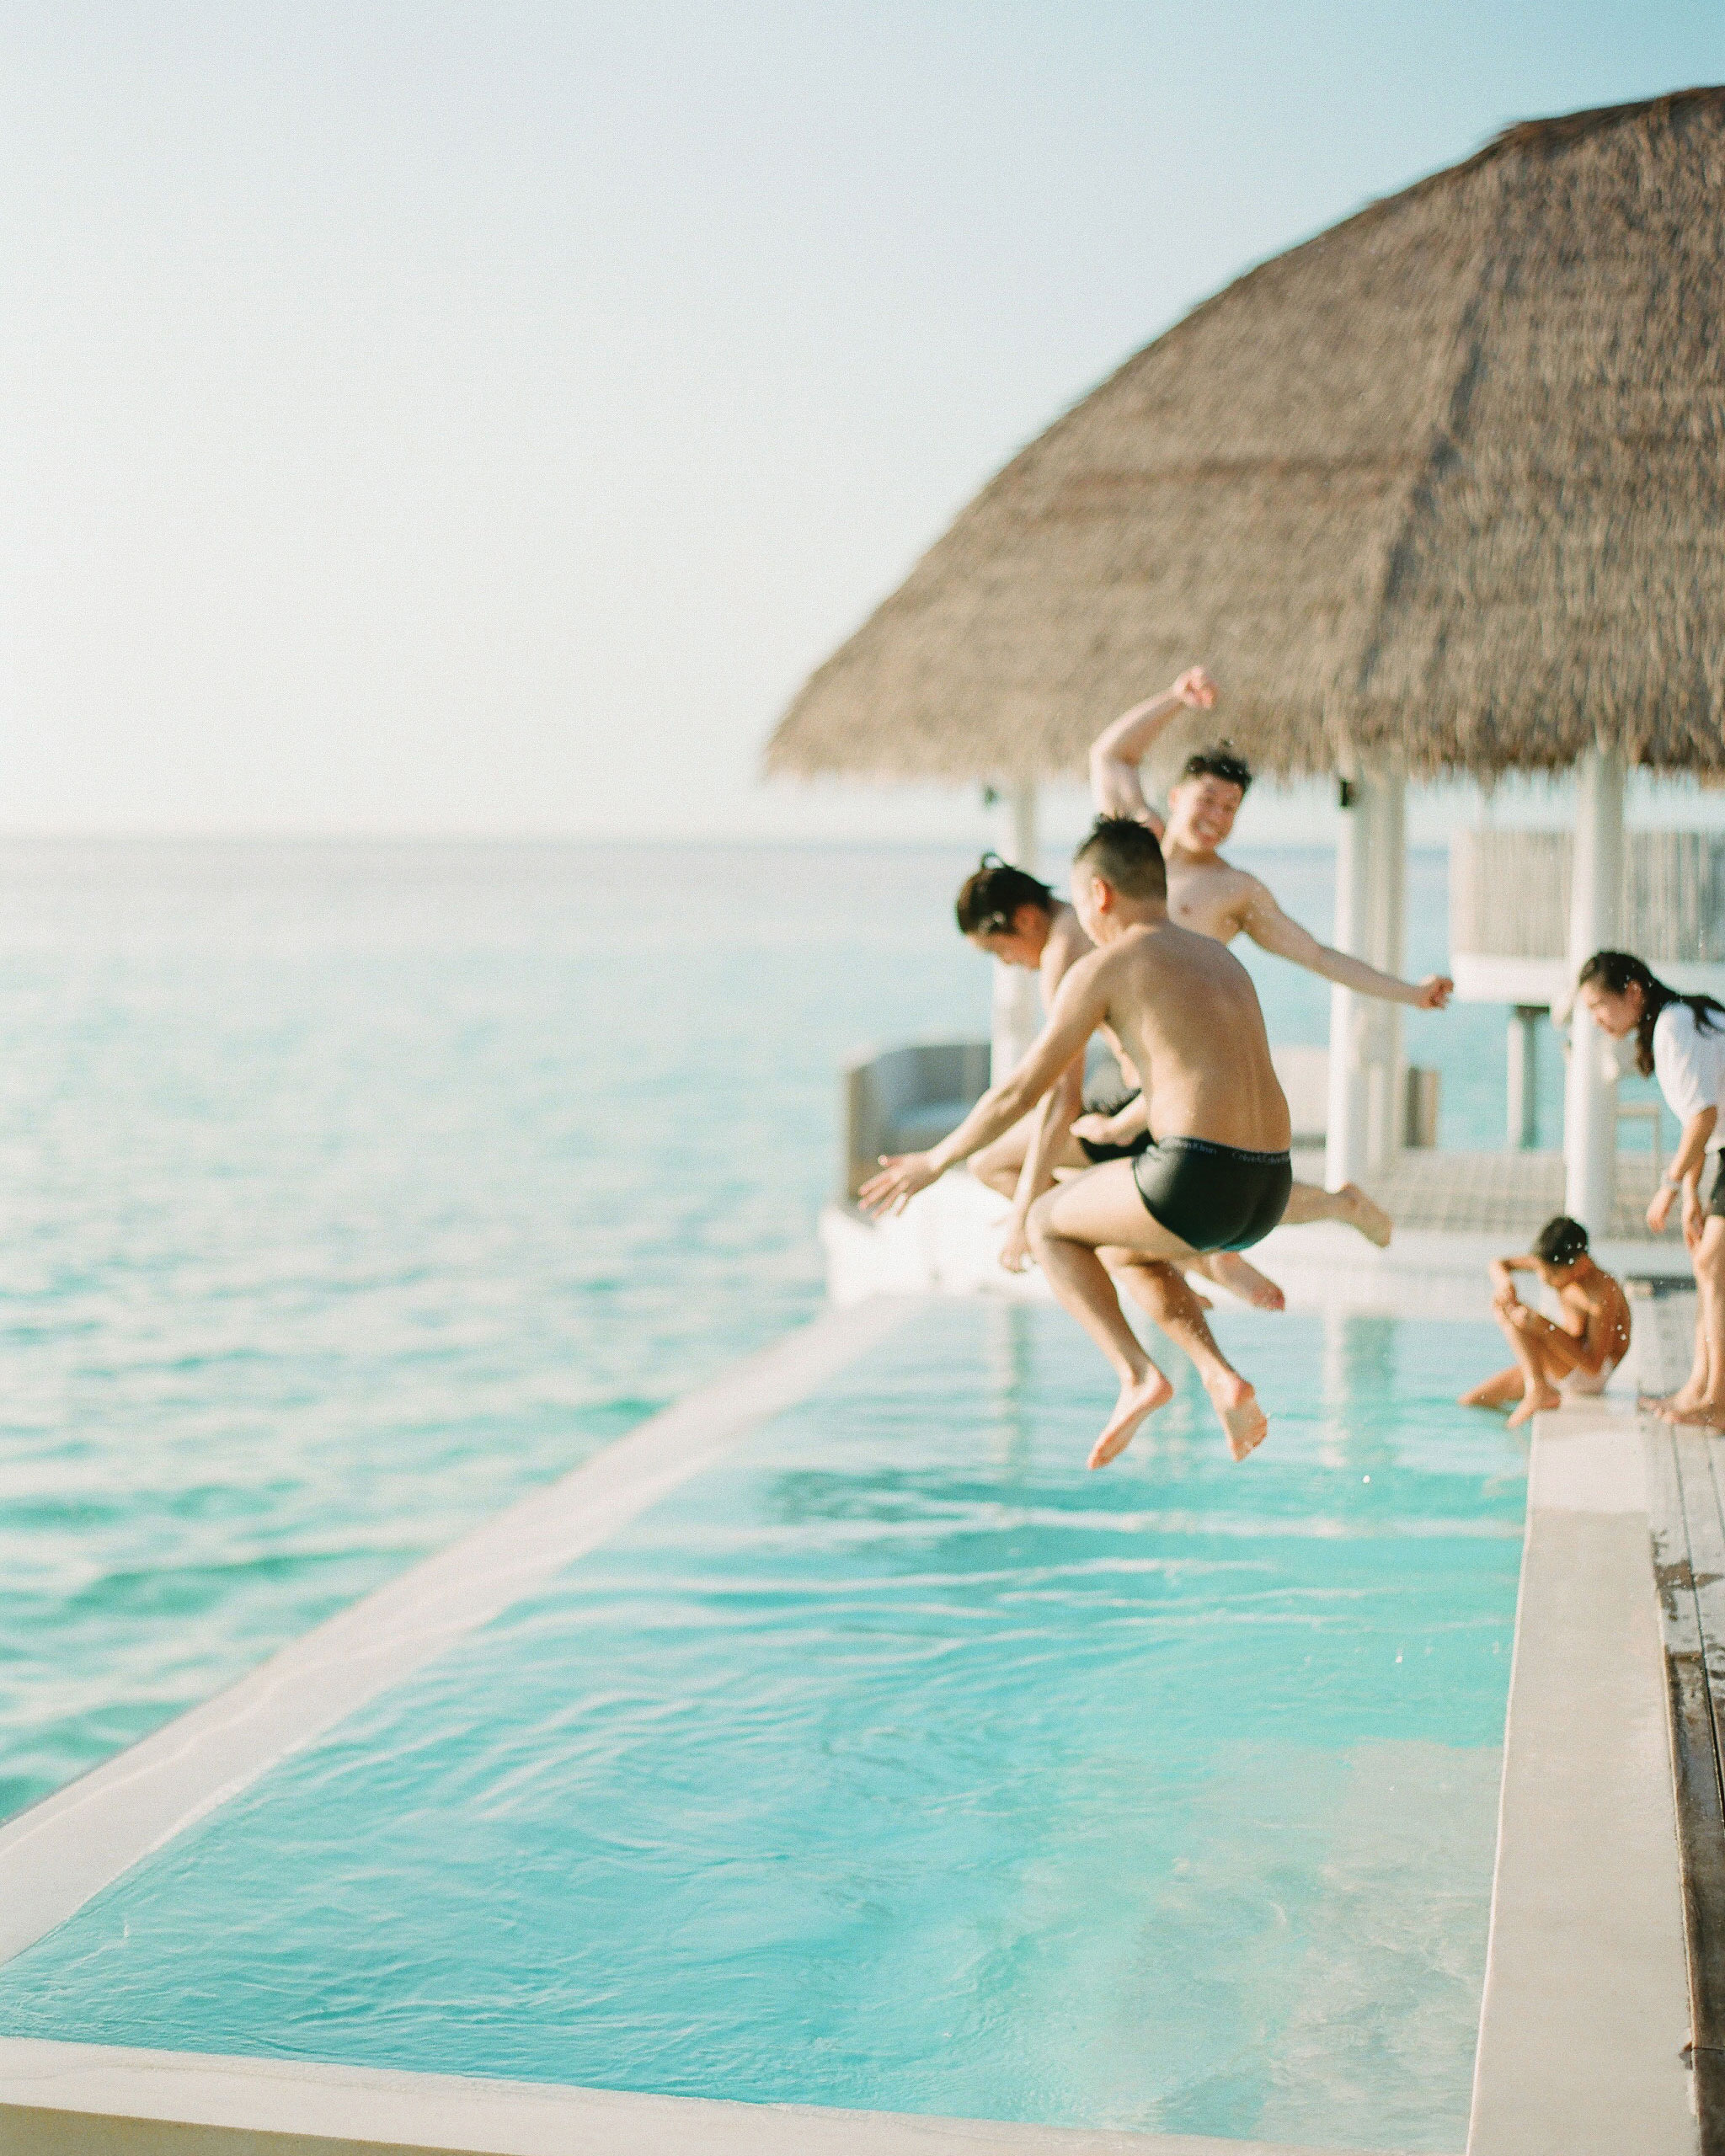 peony-richard-wedding-maldives-jumping-in-pool-0467-s112383.jpg